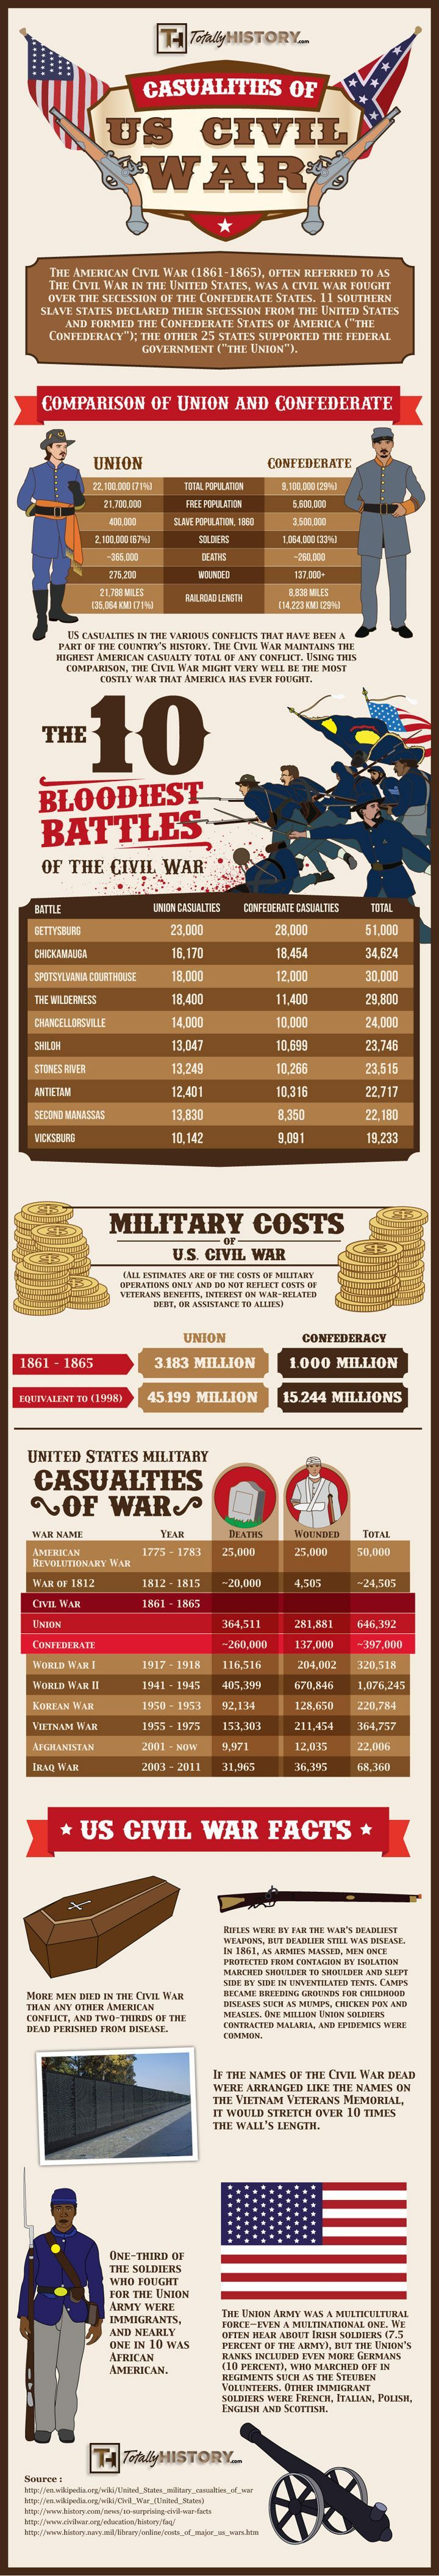 U.S. Civil War Casualties Statistics – Deaths Comparison of Battles #battles #history #civilwar